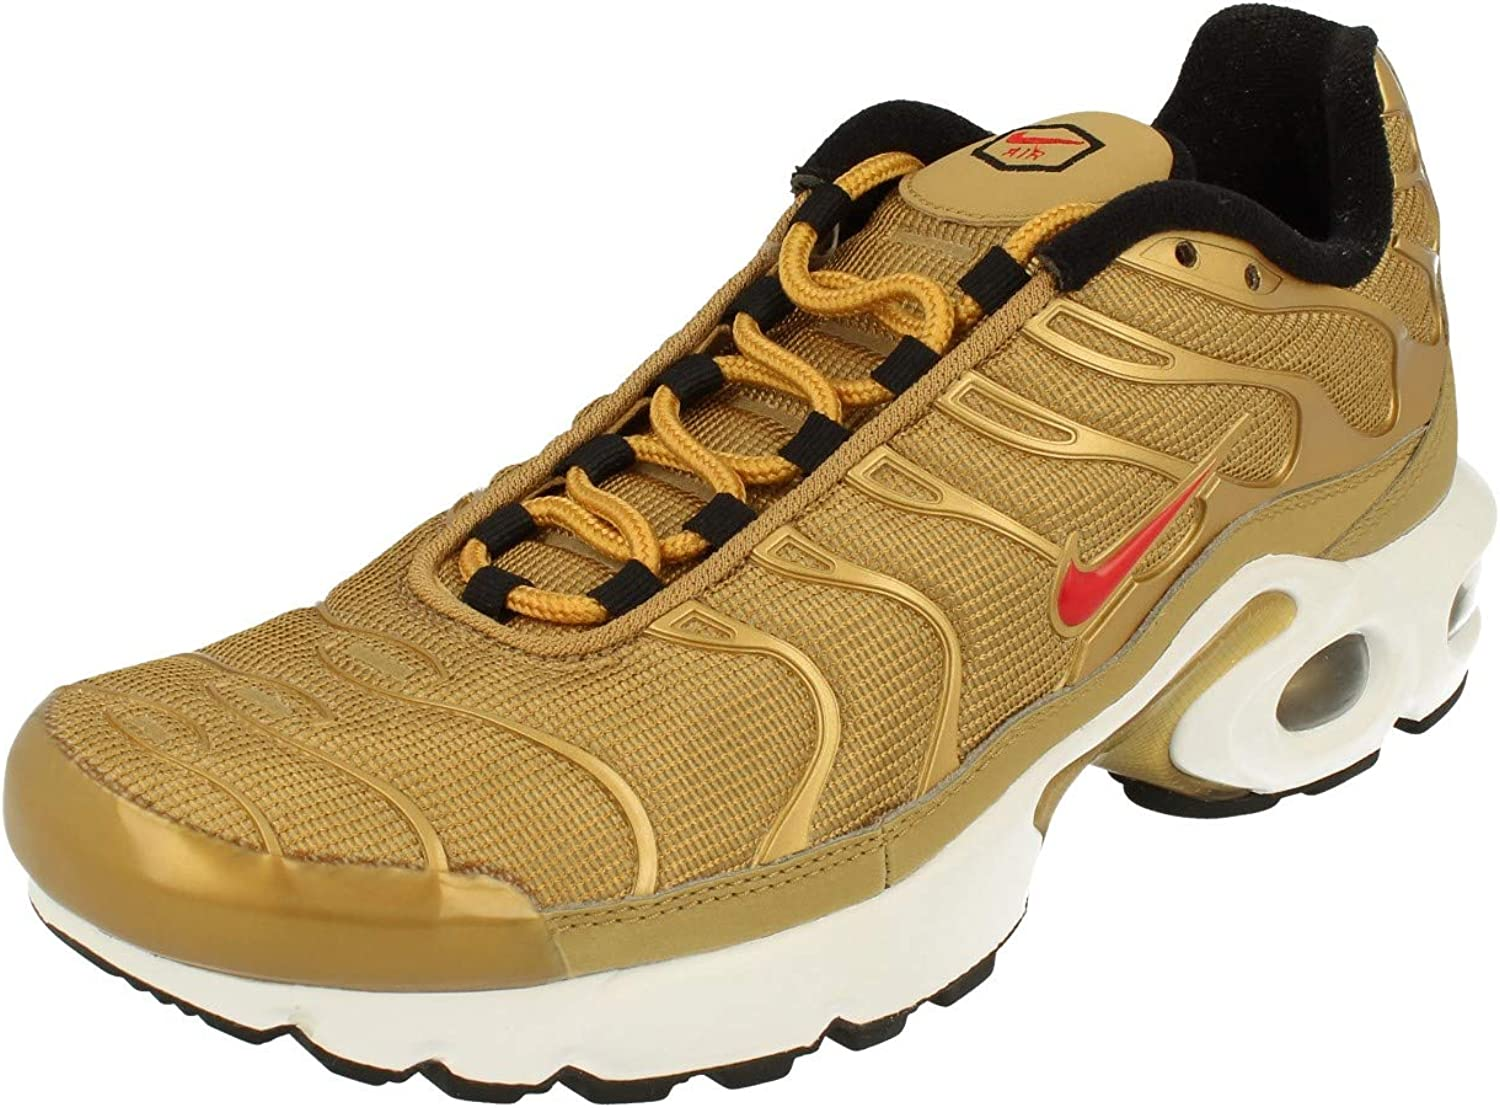 Nike Air Max Plus Tn Se BG Running Trainers Ar0259 Sneakers shoes